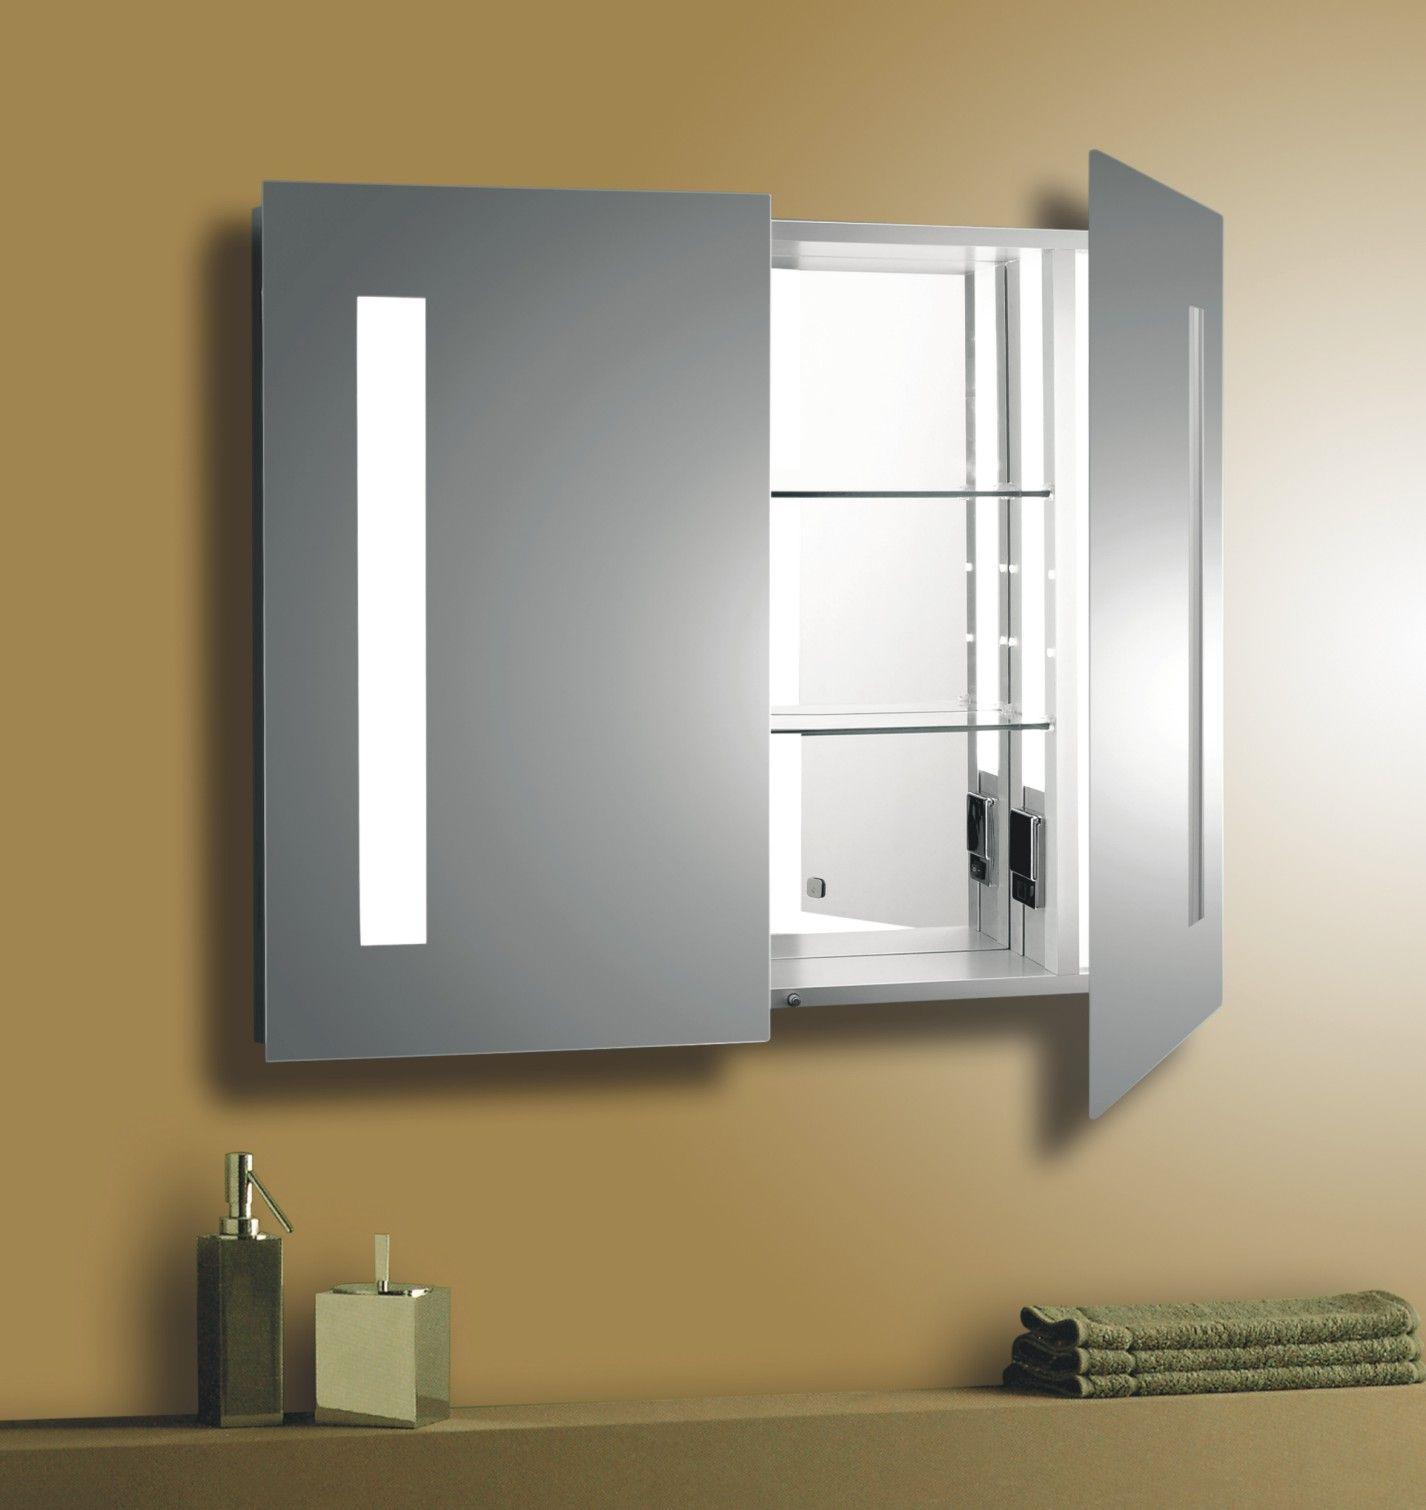 Ordinaire Cool Oak Medicine Cabinet With Mirror And Lights And Medicine Cabinets With  Mirrors Recessed